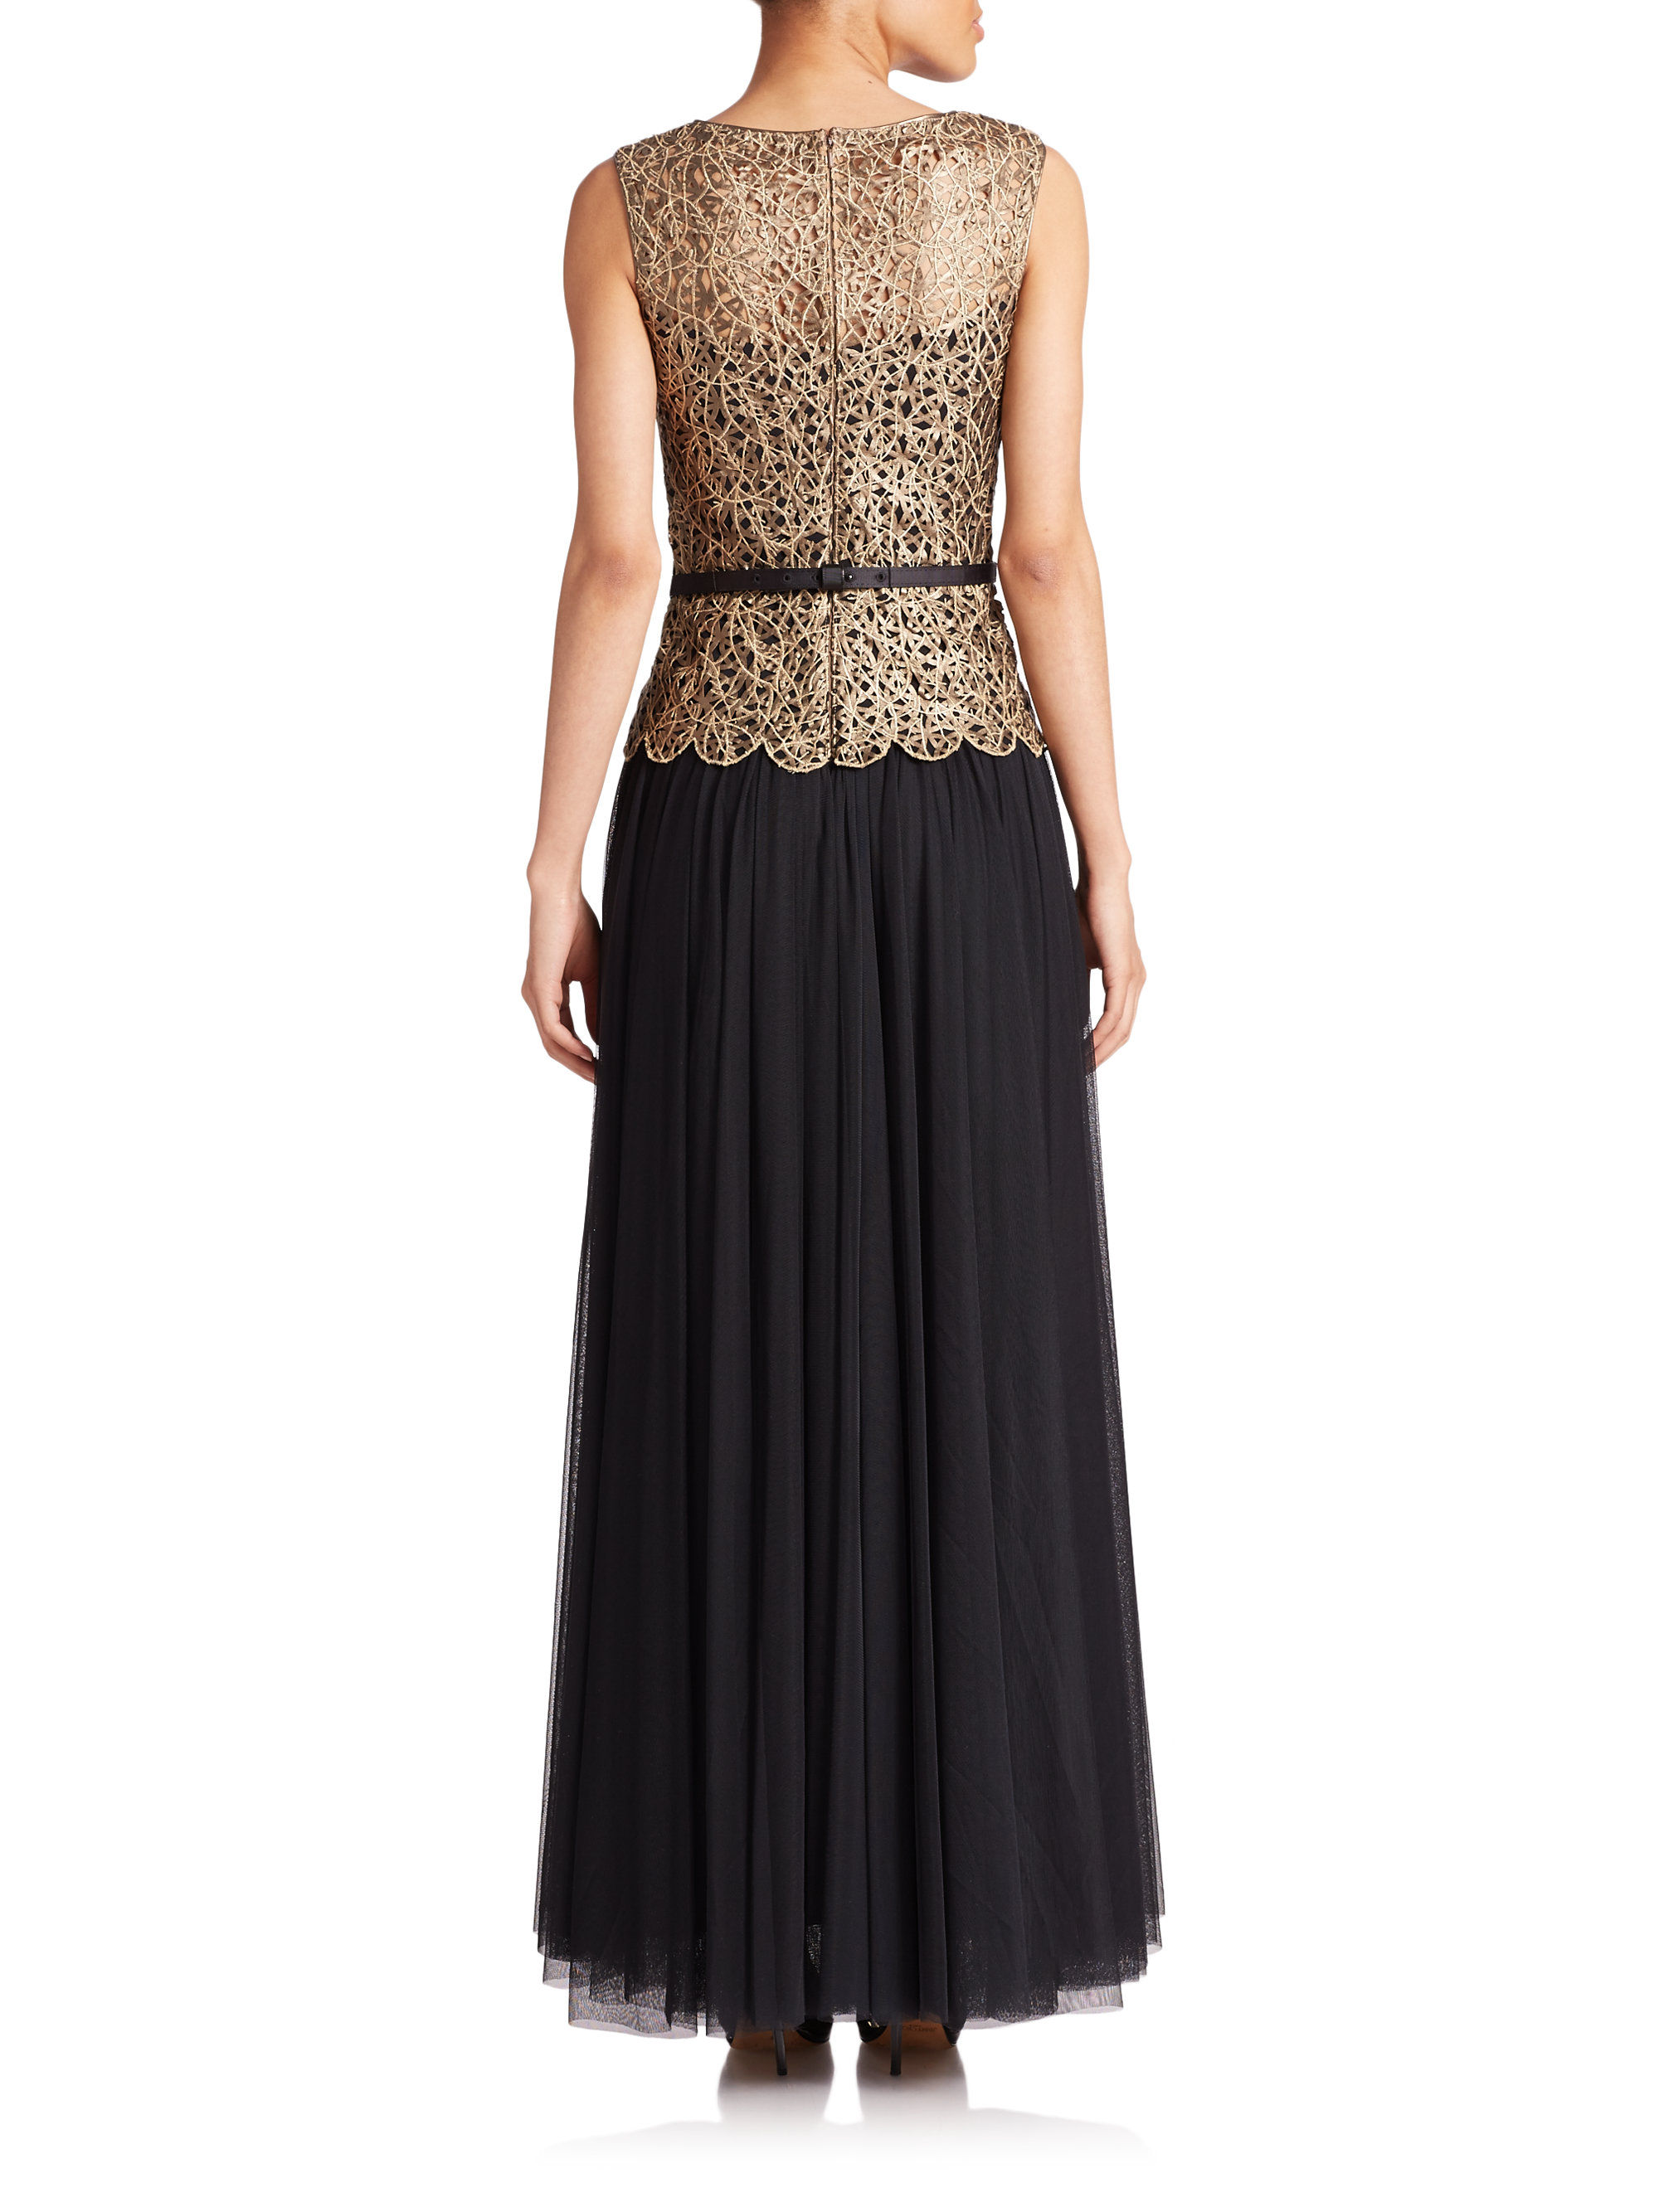 Lyst - Tadashi Shoji Belted Lace-top Gown in Metallic